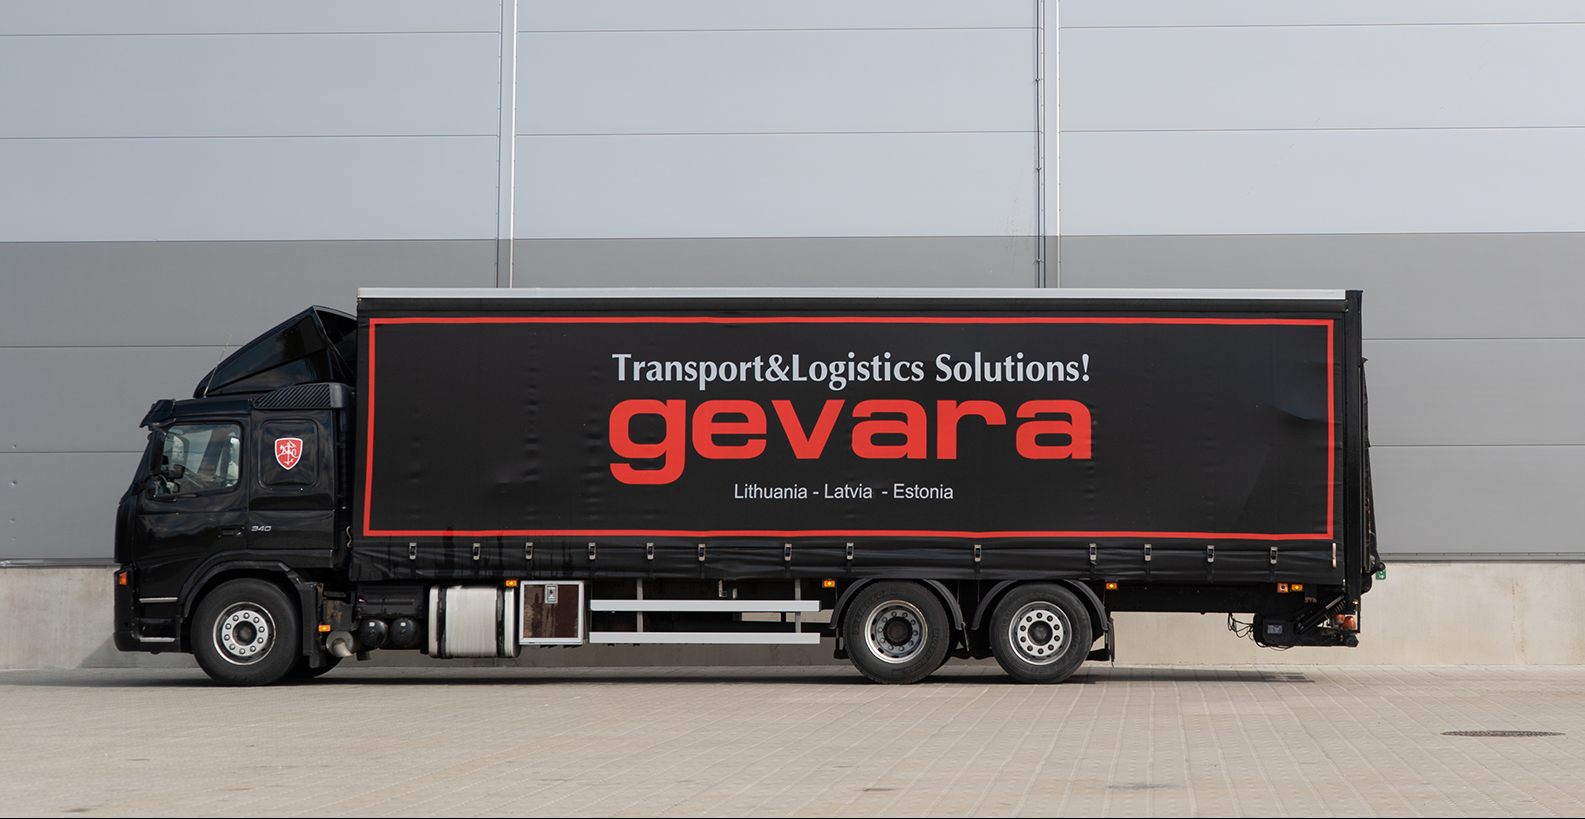 gevara-truck transportation europe